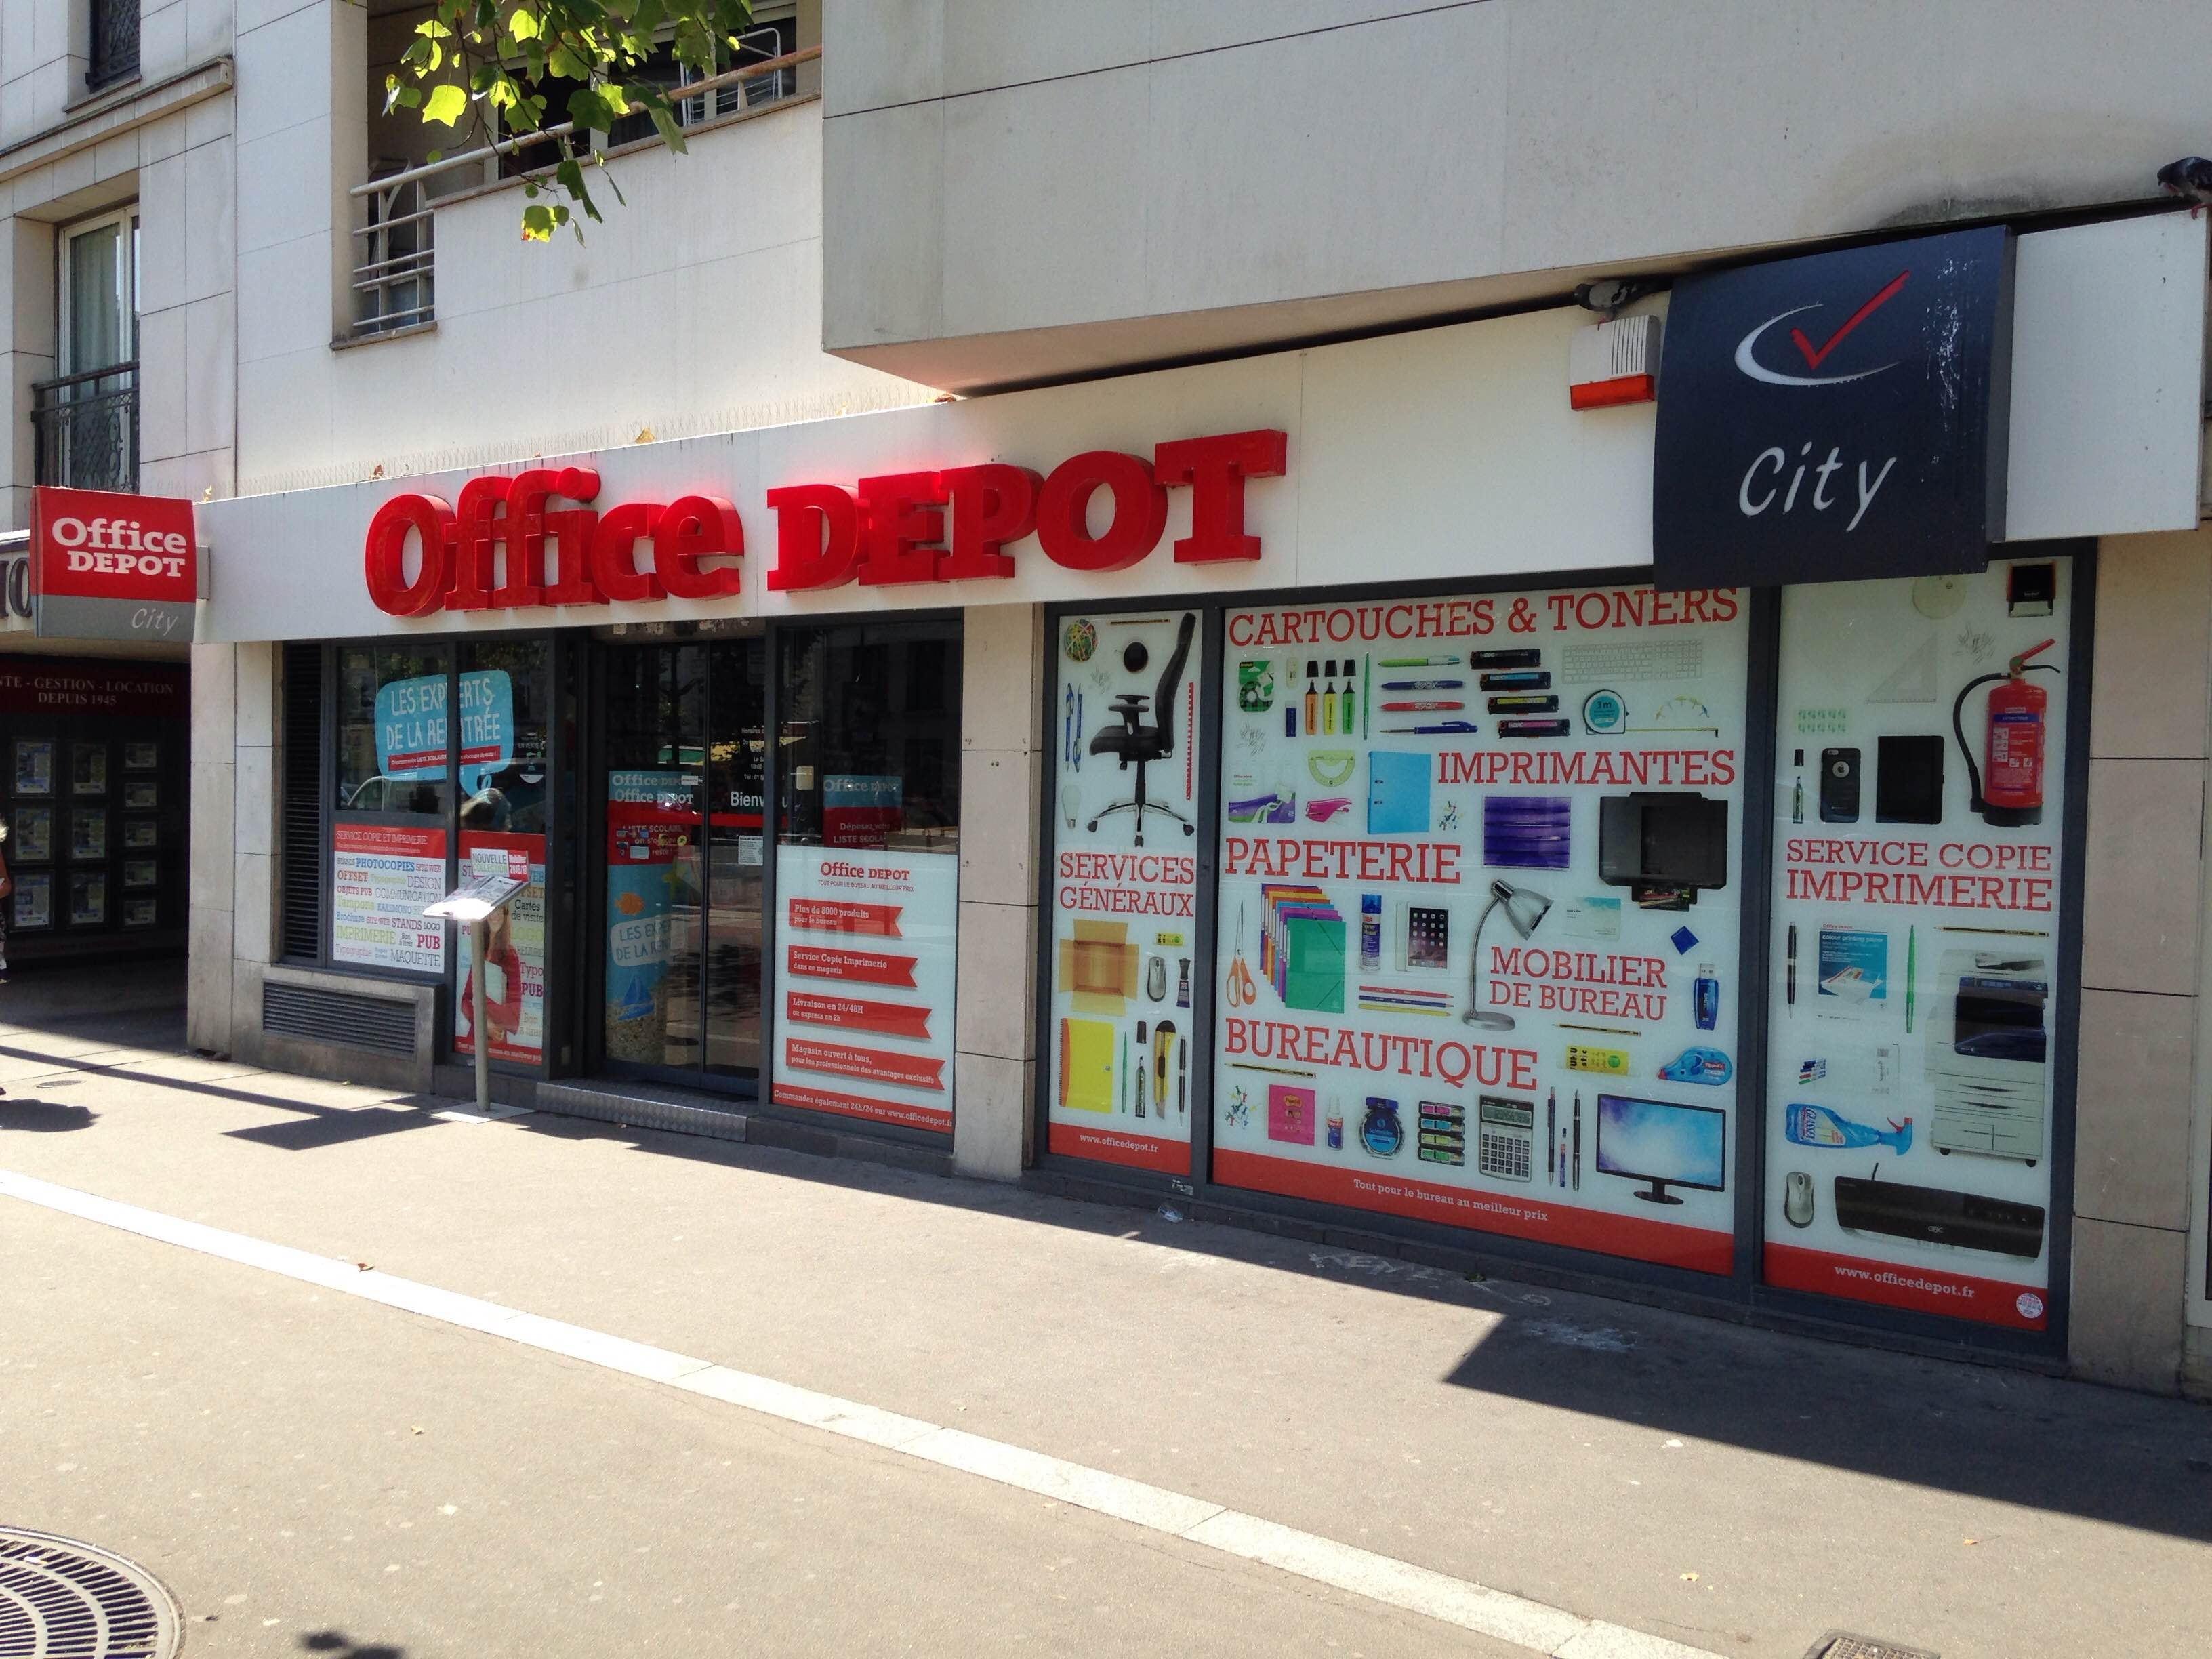 Magasin office depot paris ème italie fournitures mobiliers